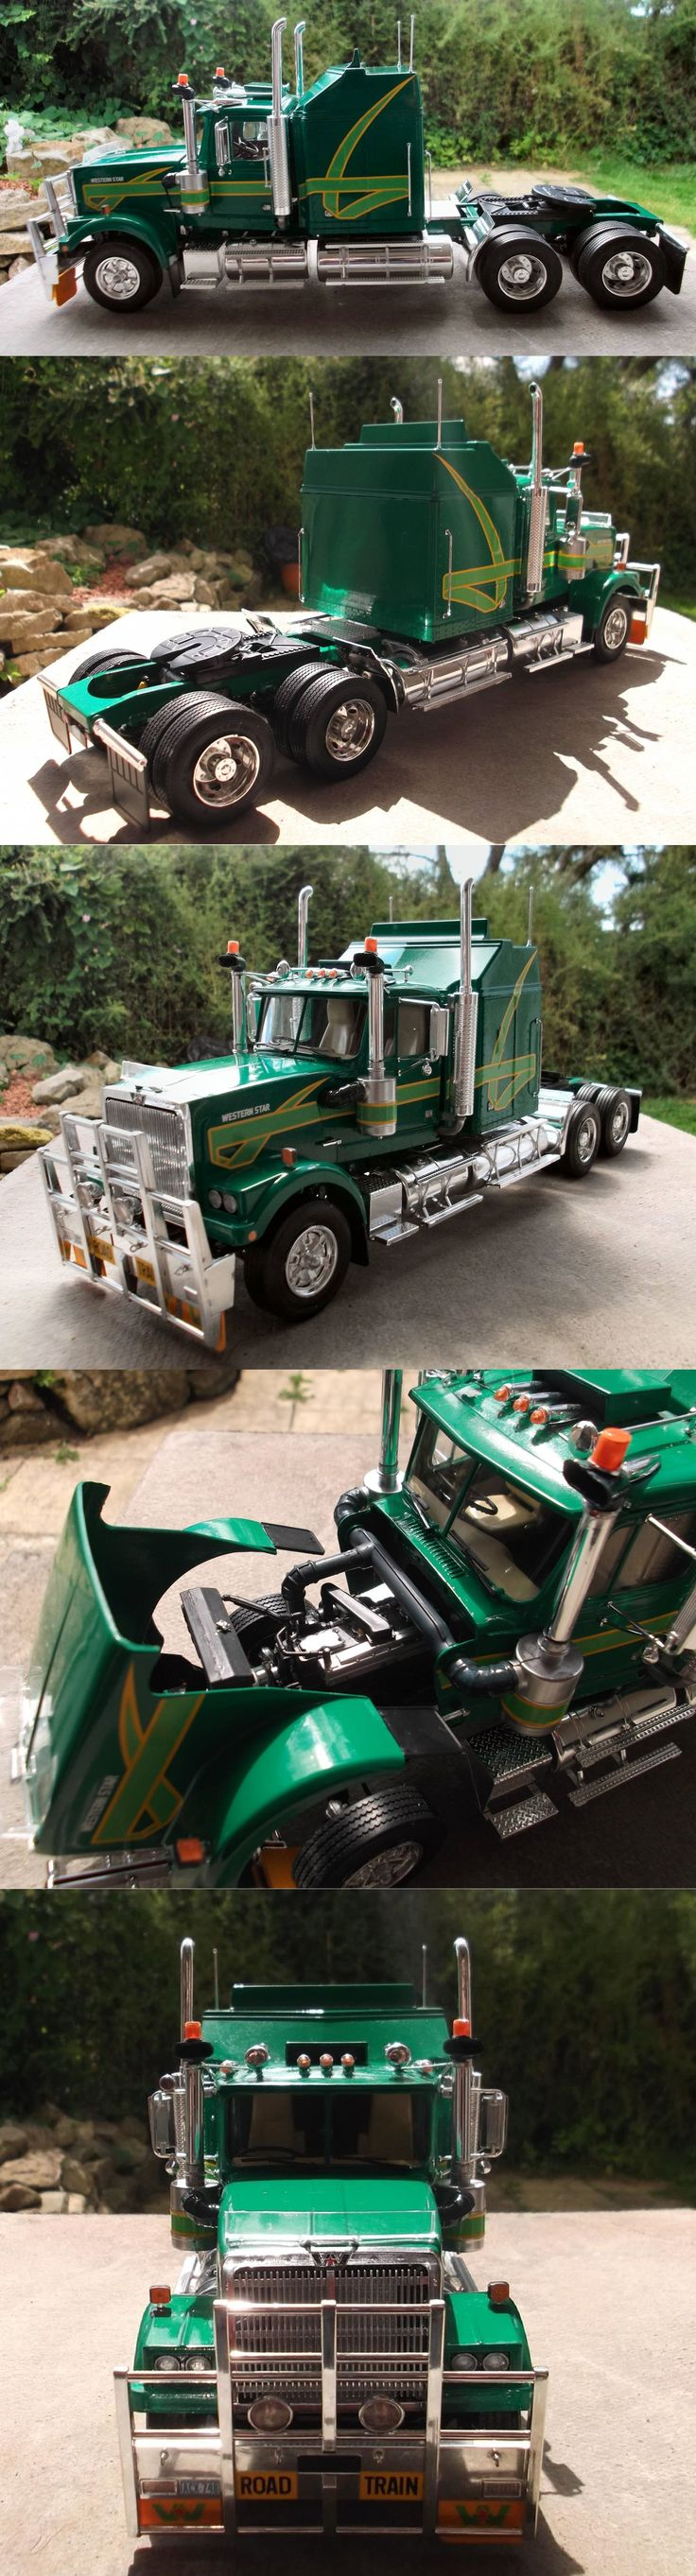 Nice detail for a truck model.